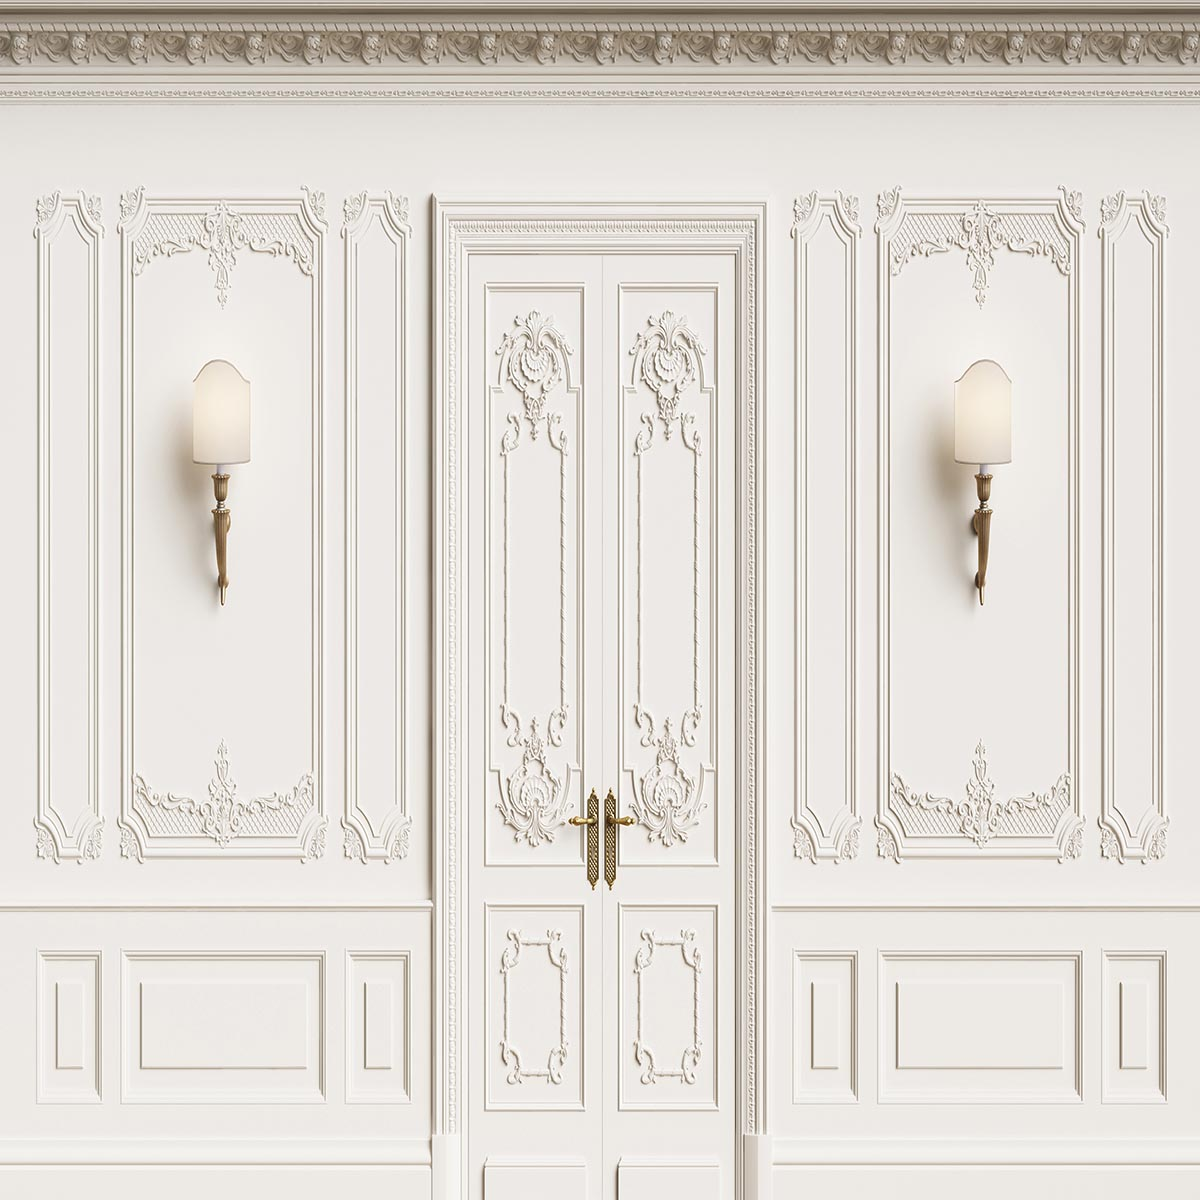 White Texture Vintage Door Wall Light Backdrop for Wedding